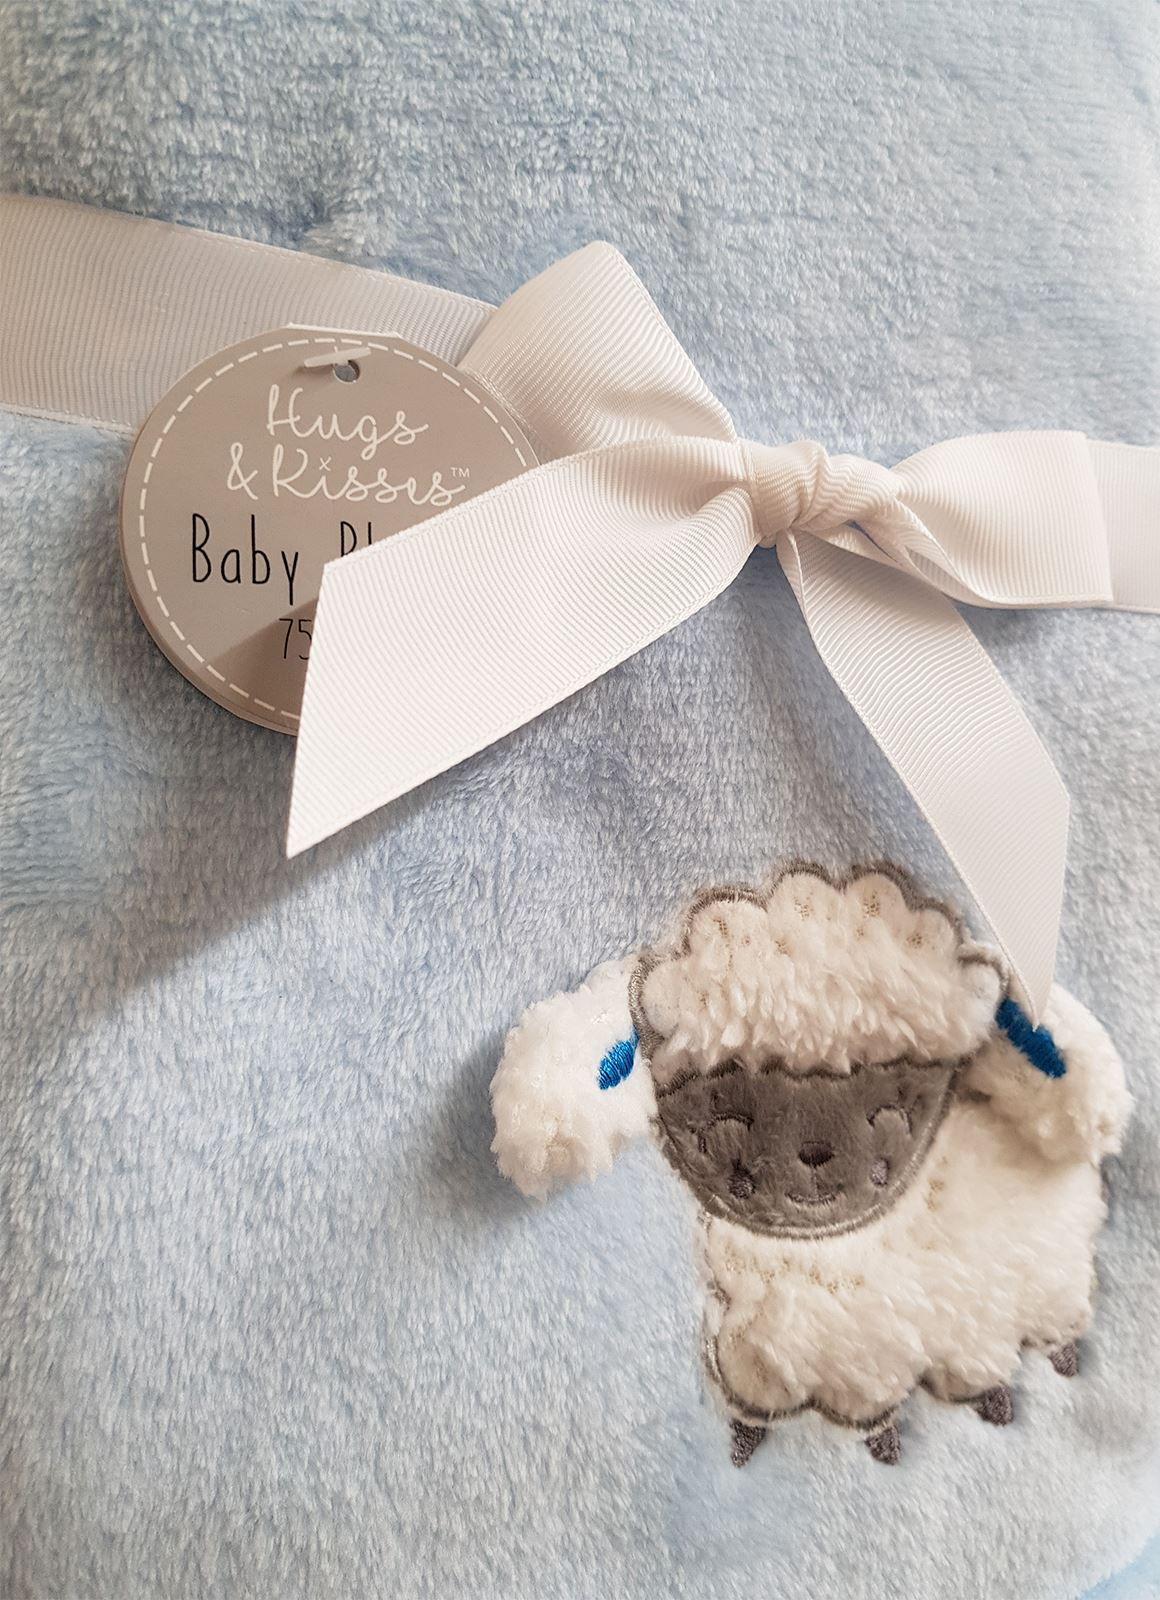 Embroidered-3D-Baby-Blanket-Sheep-Pink-Grey-Blue-Sherpa-Fleece-75x100cm thumbnail 4